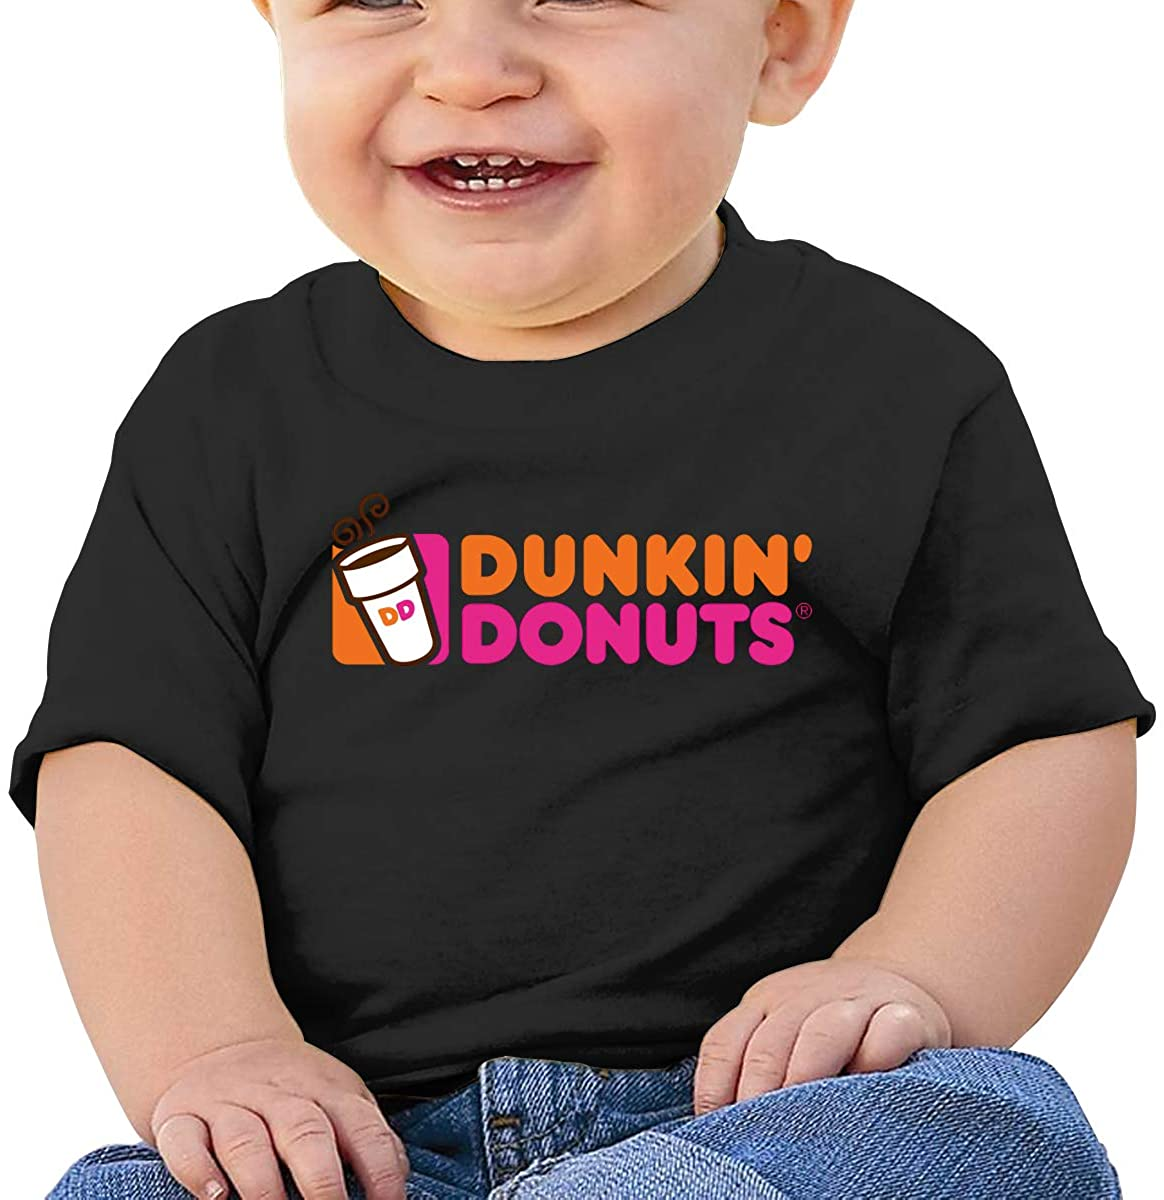 Dunkin Donuts Comfortable and Breathable Skin-Friendly Baby Short-Sleeved T-Shirt Black